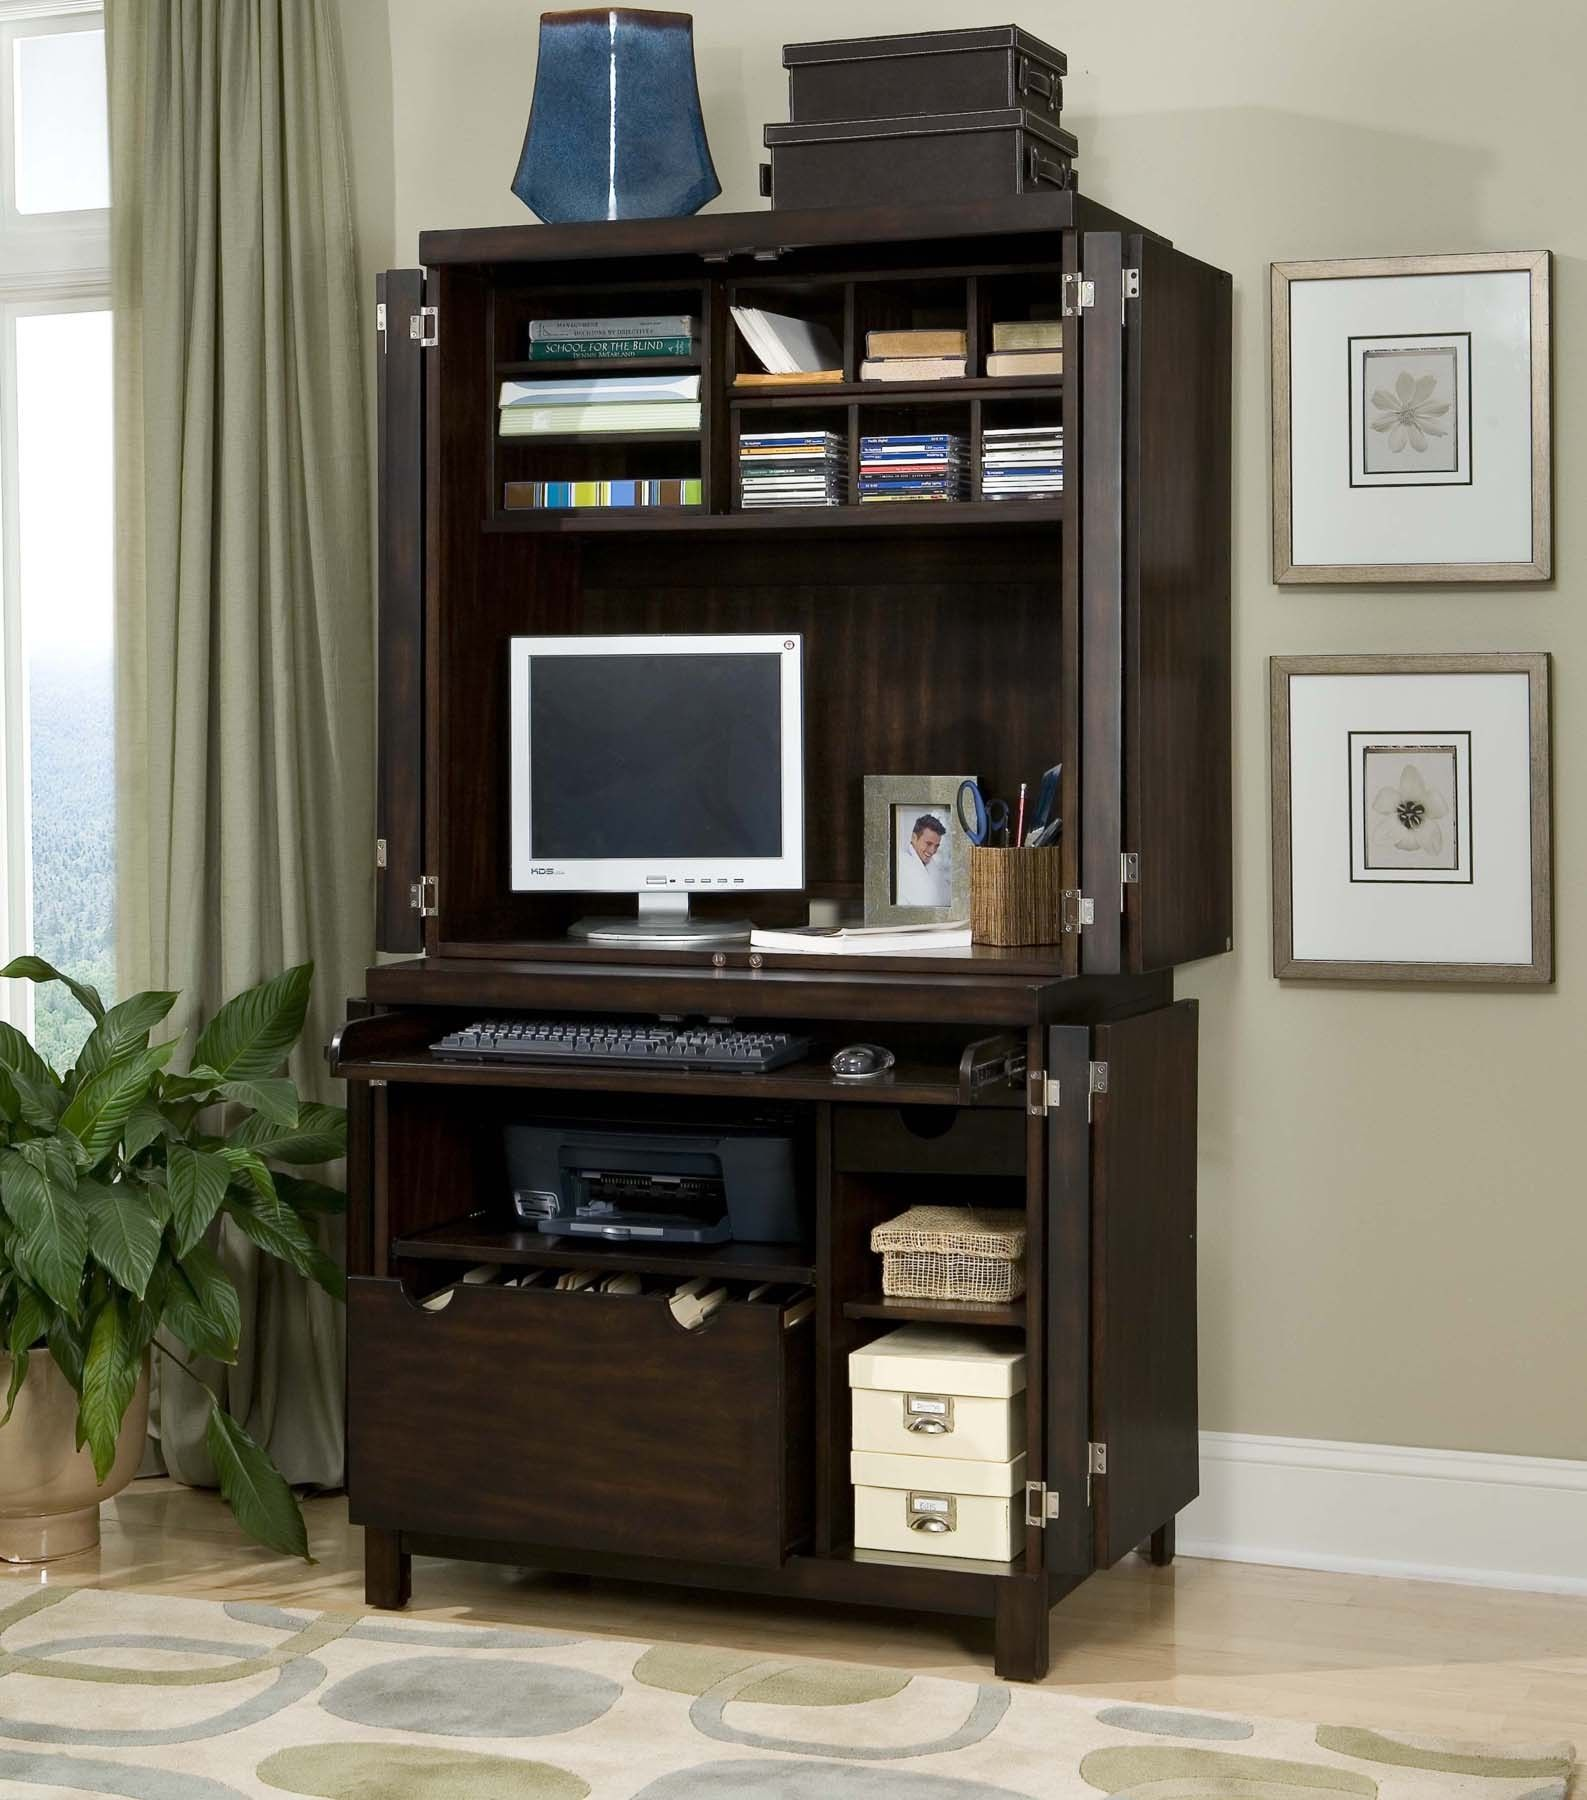 Buy HomeStyles City Chic Cabinet U0026 Hutch In Espresso Finish At ShopLadder    Great Deals On Computer Armoires With A Superb Selection To Choose From!